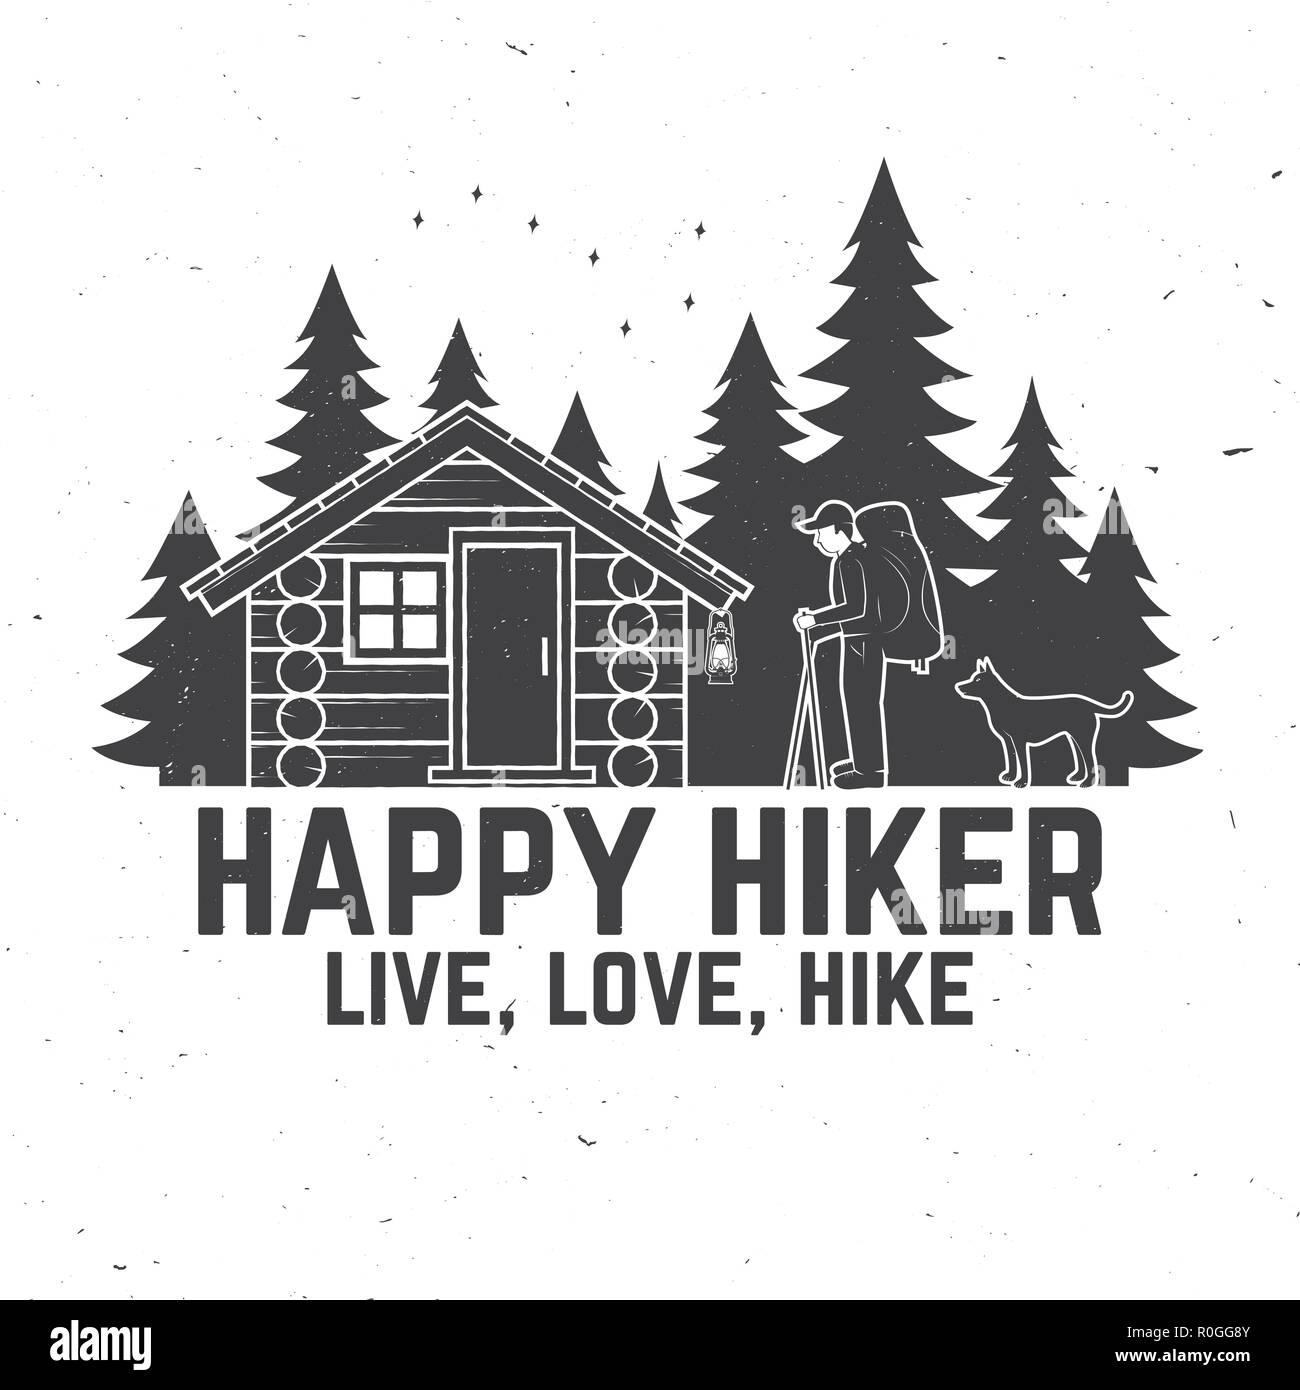 Happy hiker. Live, love, hike. Extreme adventure. Vector illustration. Concept for shirt or print, stamp. Vintage typography design with hiker, dog, forest cabin and forest silhouette on the night - Stock Vector